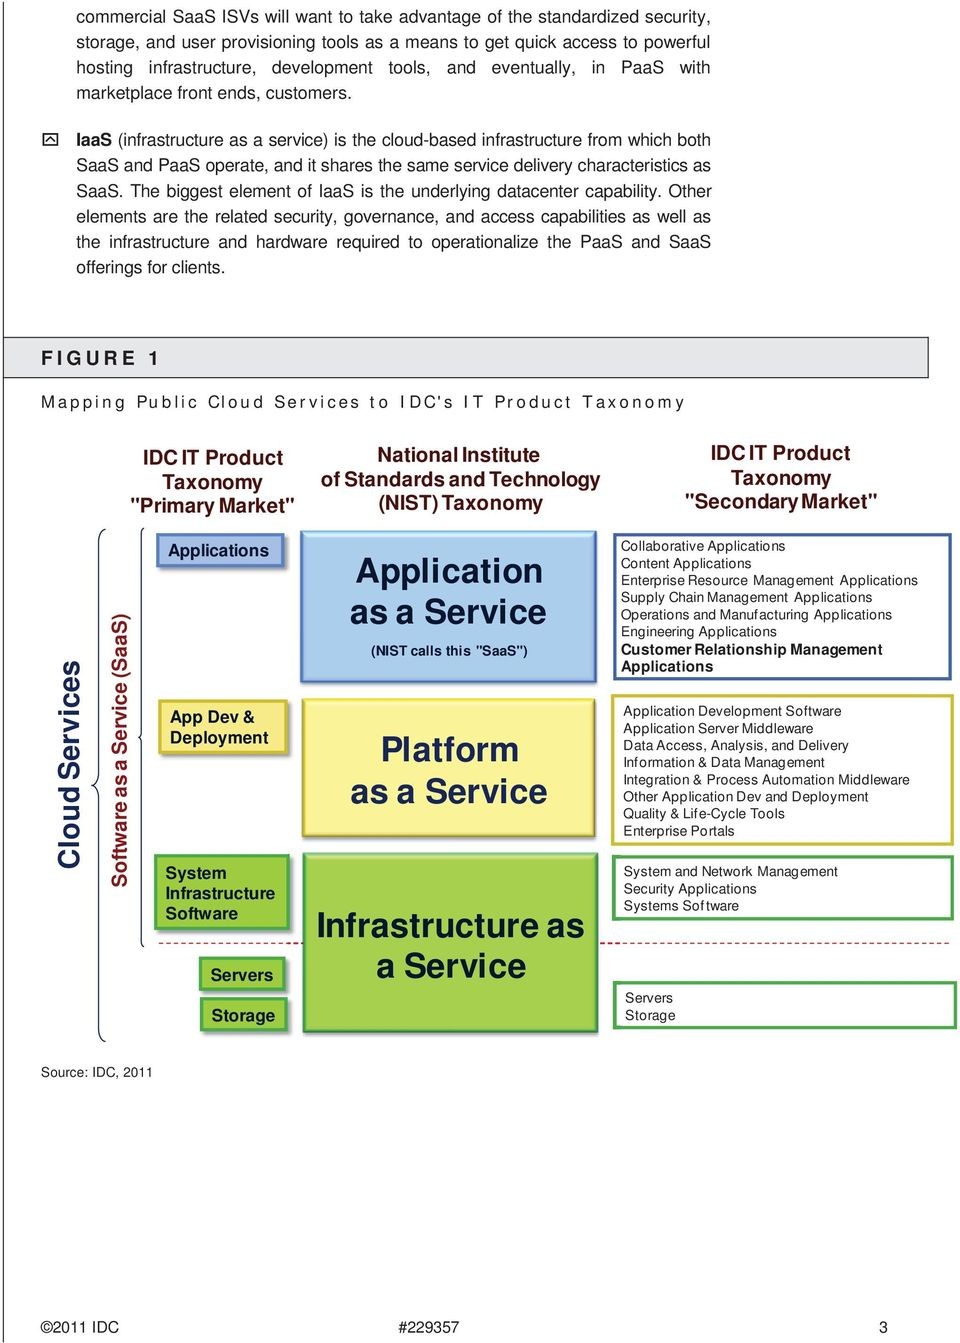 IaaS (infrastructure as a service) is the cloud-based infrastructure from which both SaaS and PaaS operate, and it shares the same service delivery characteristics as SaaS.